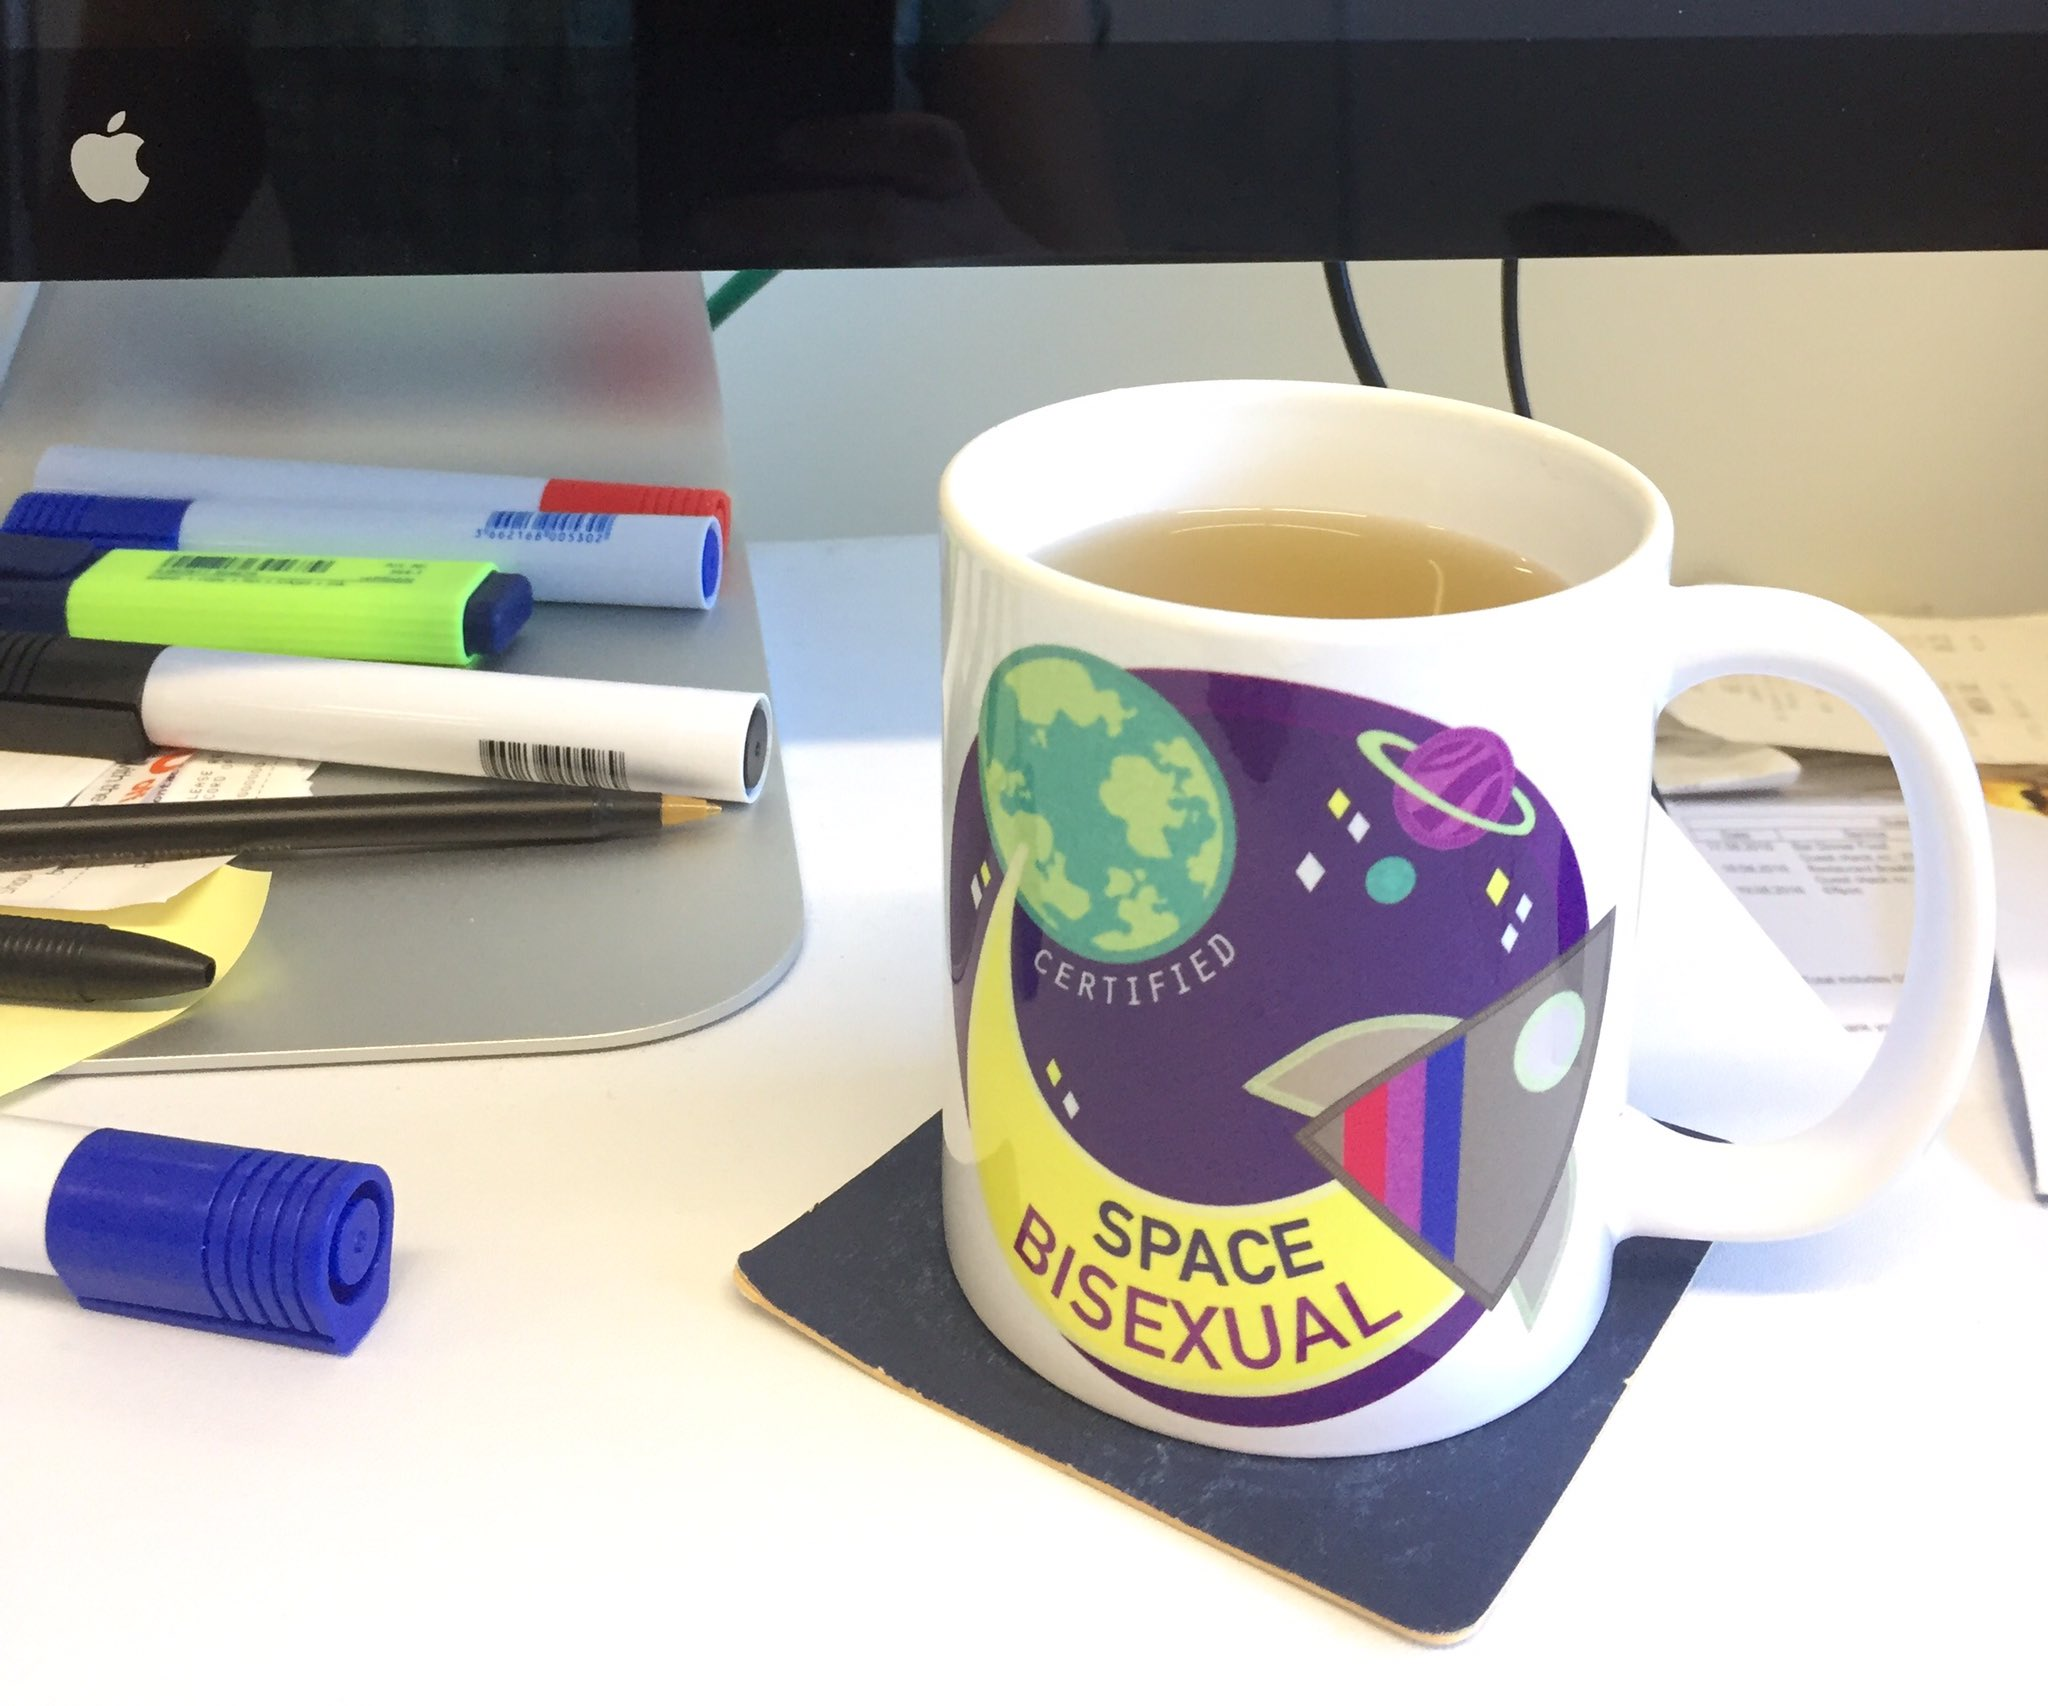 I have a new favorite office mug �� #spacebisexual https://t.co/DDVItM3H14